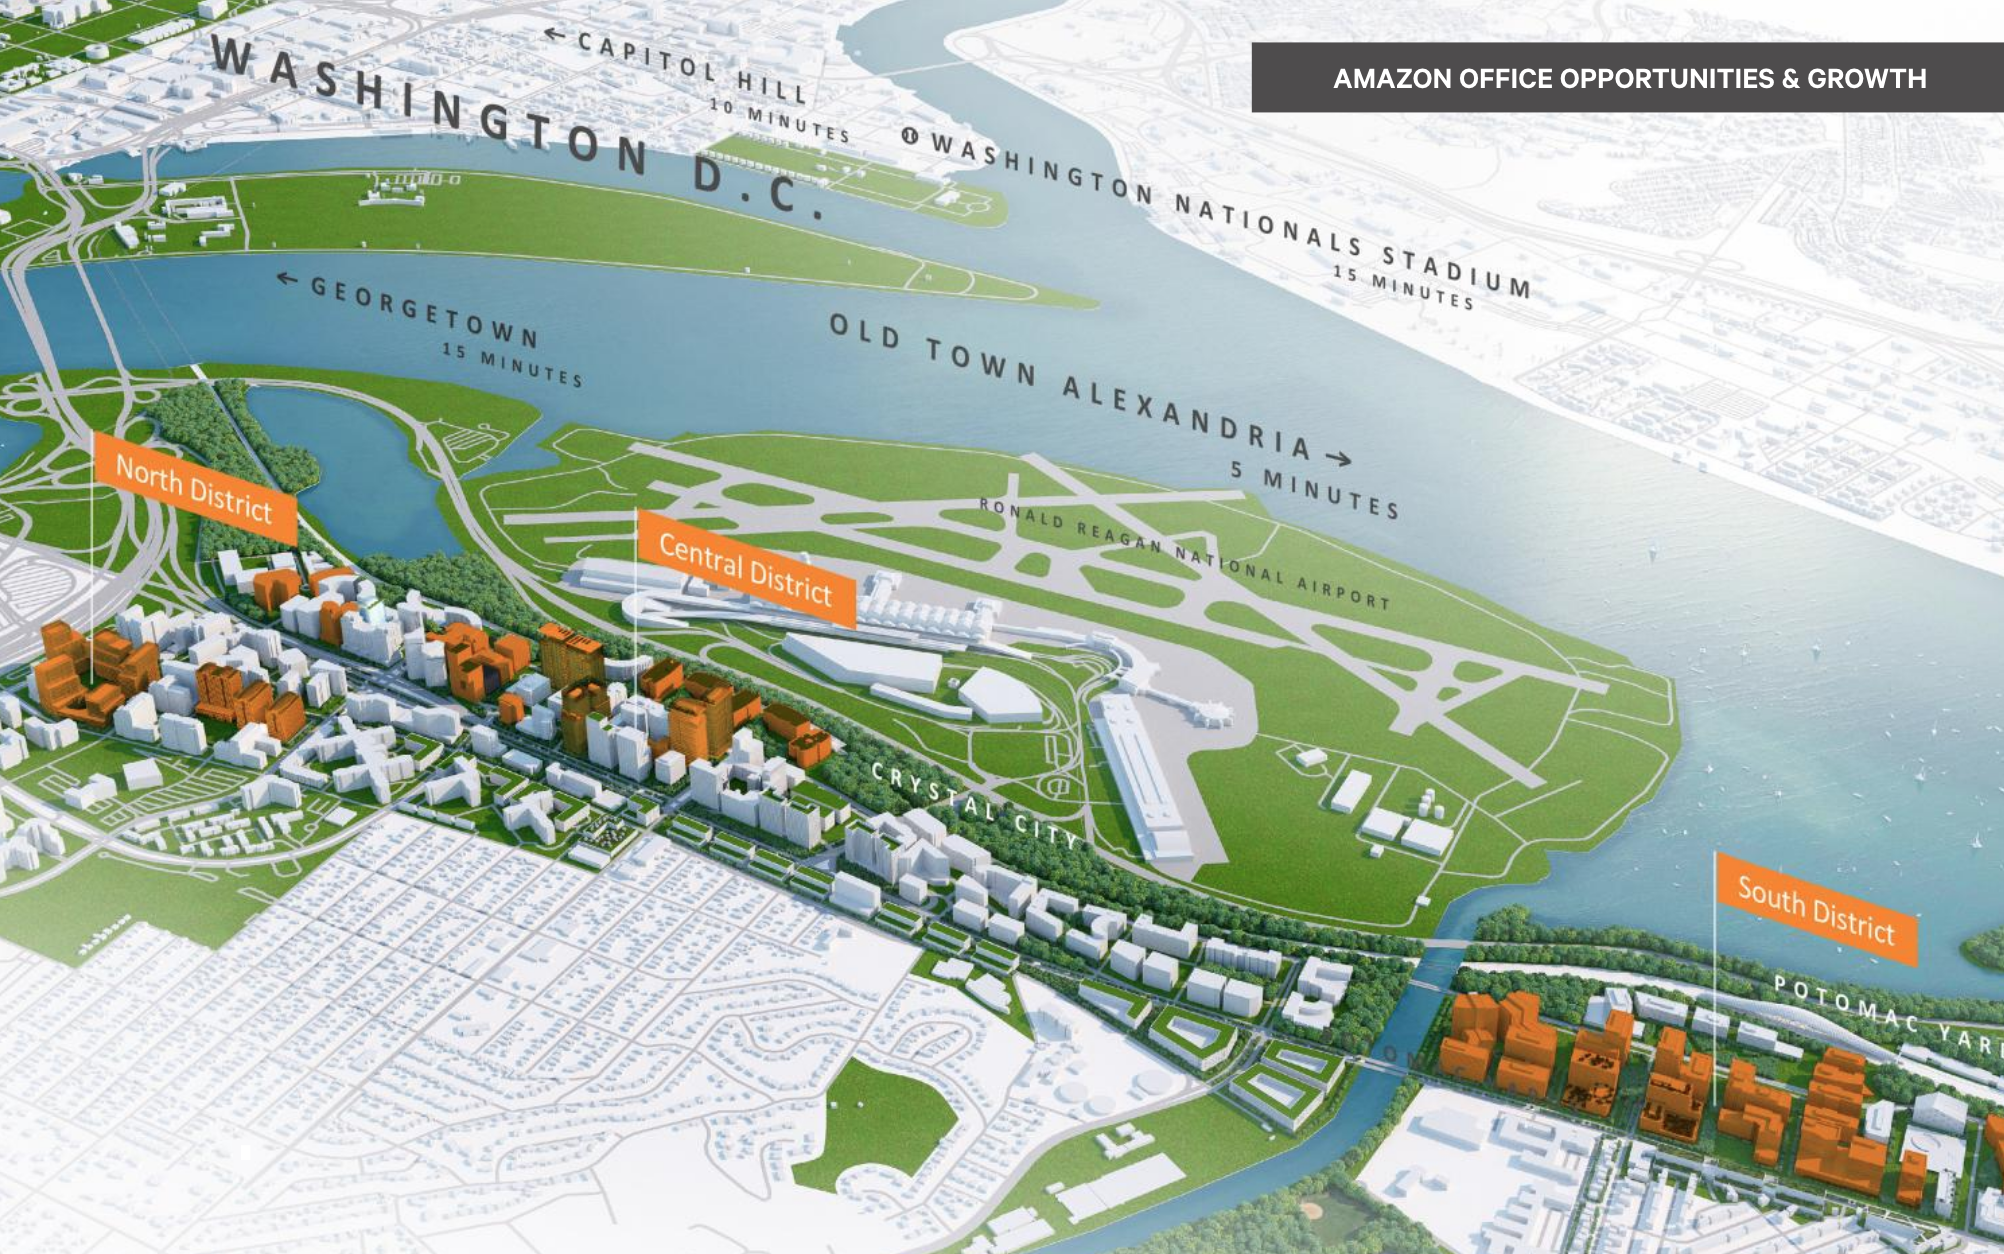 A page from Northern Virginia's submission to Amazon shows the areas for potential expansion of Amazon's new offices in the region